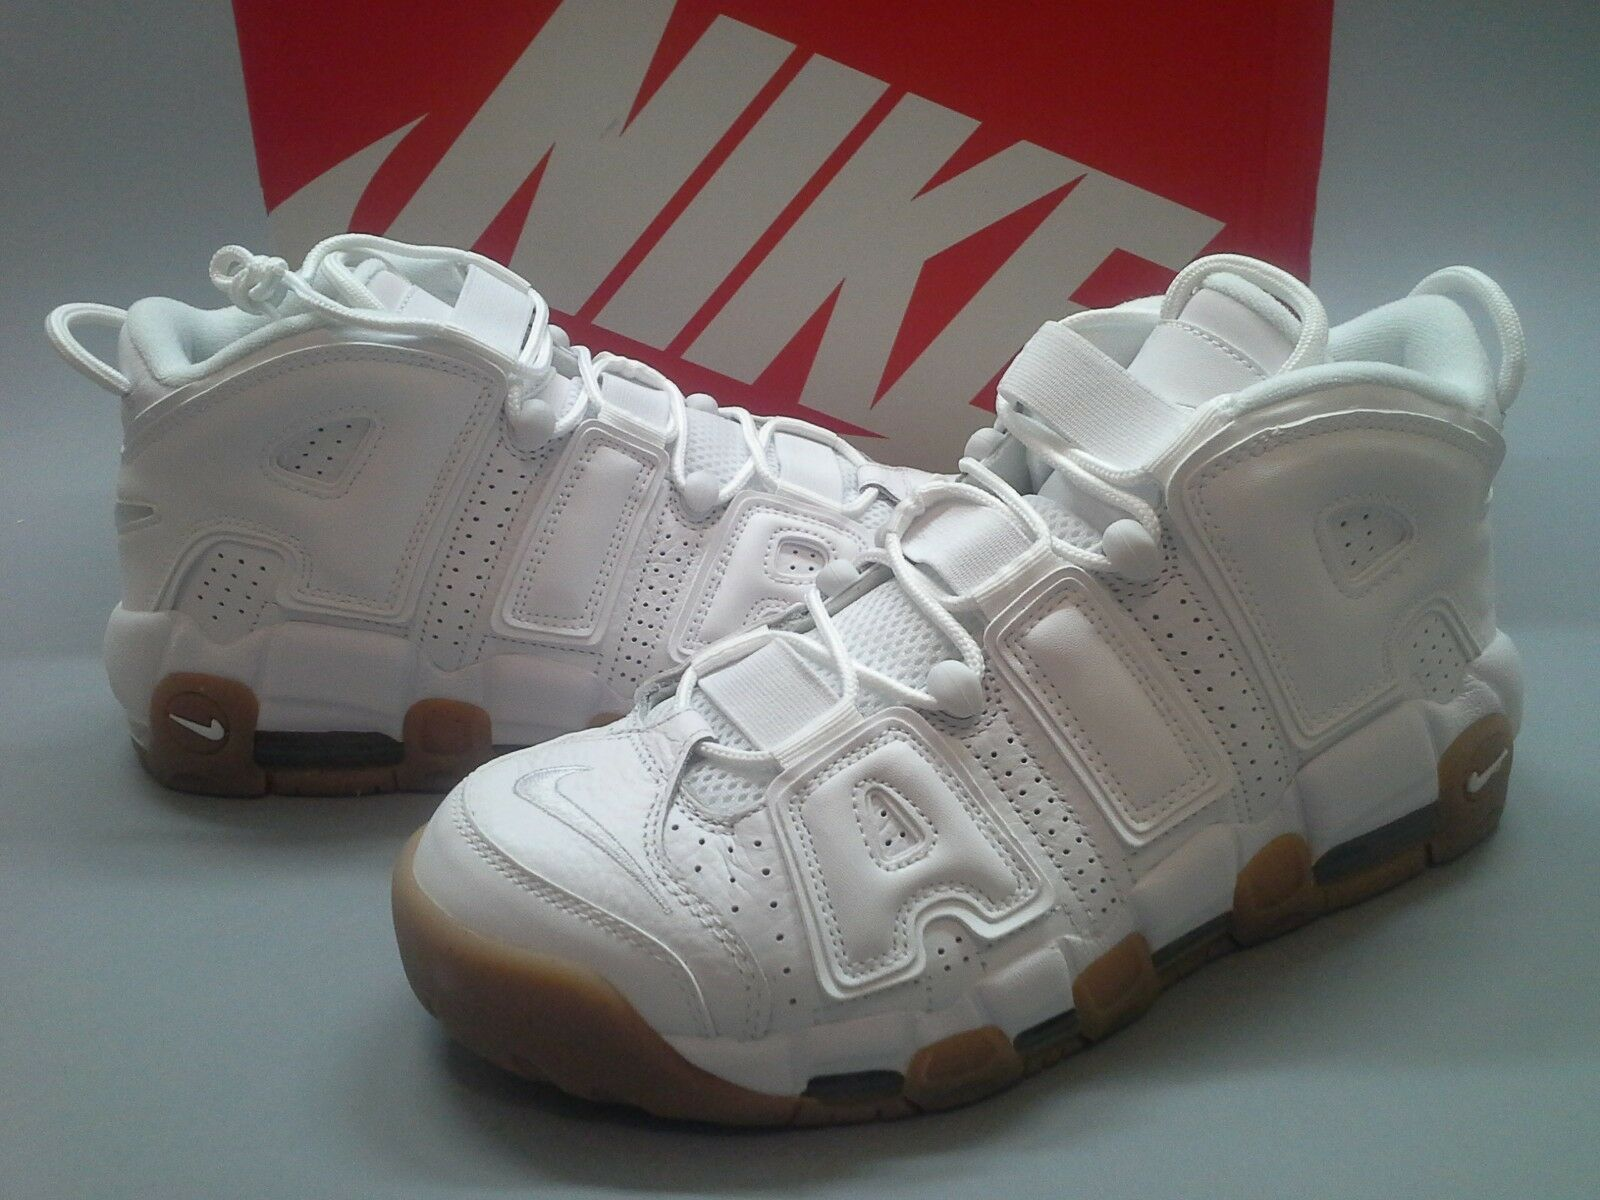 New Nike Air More Uptempo White Gum Bamboo 414962-103 Brown Pippen Bottom